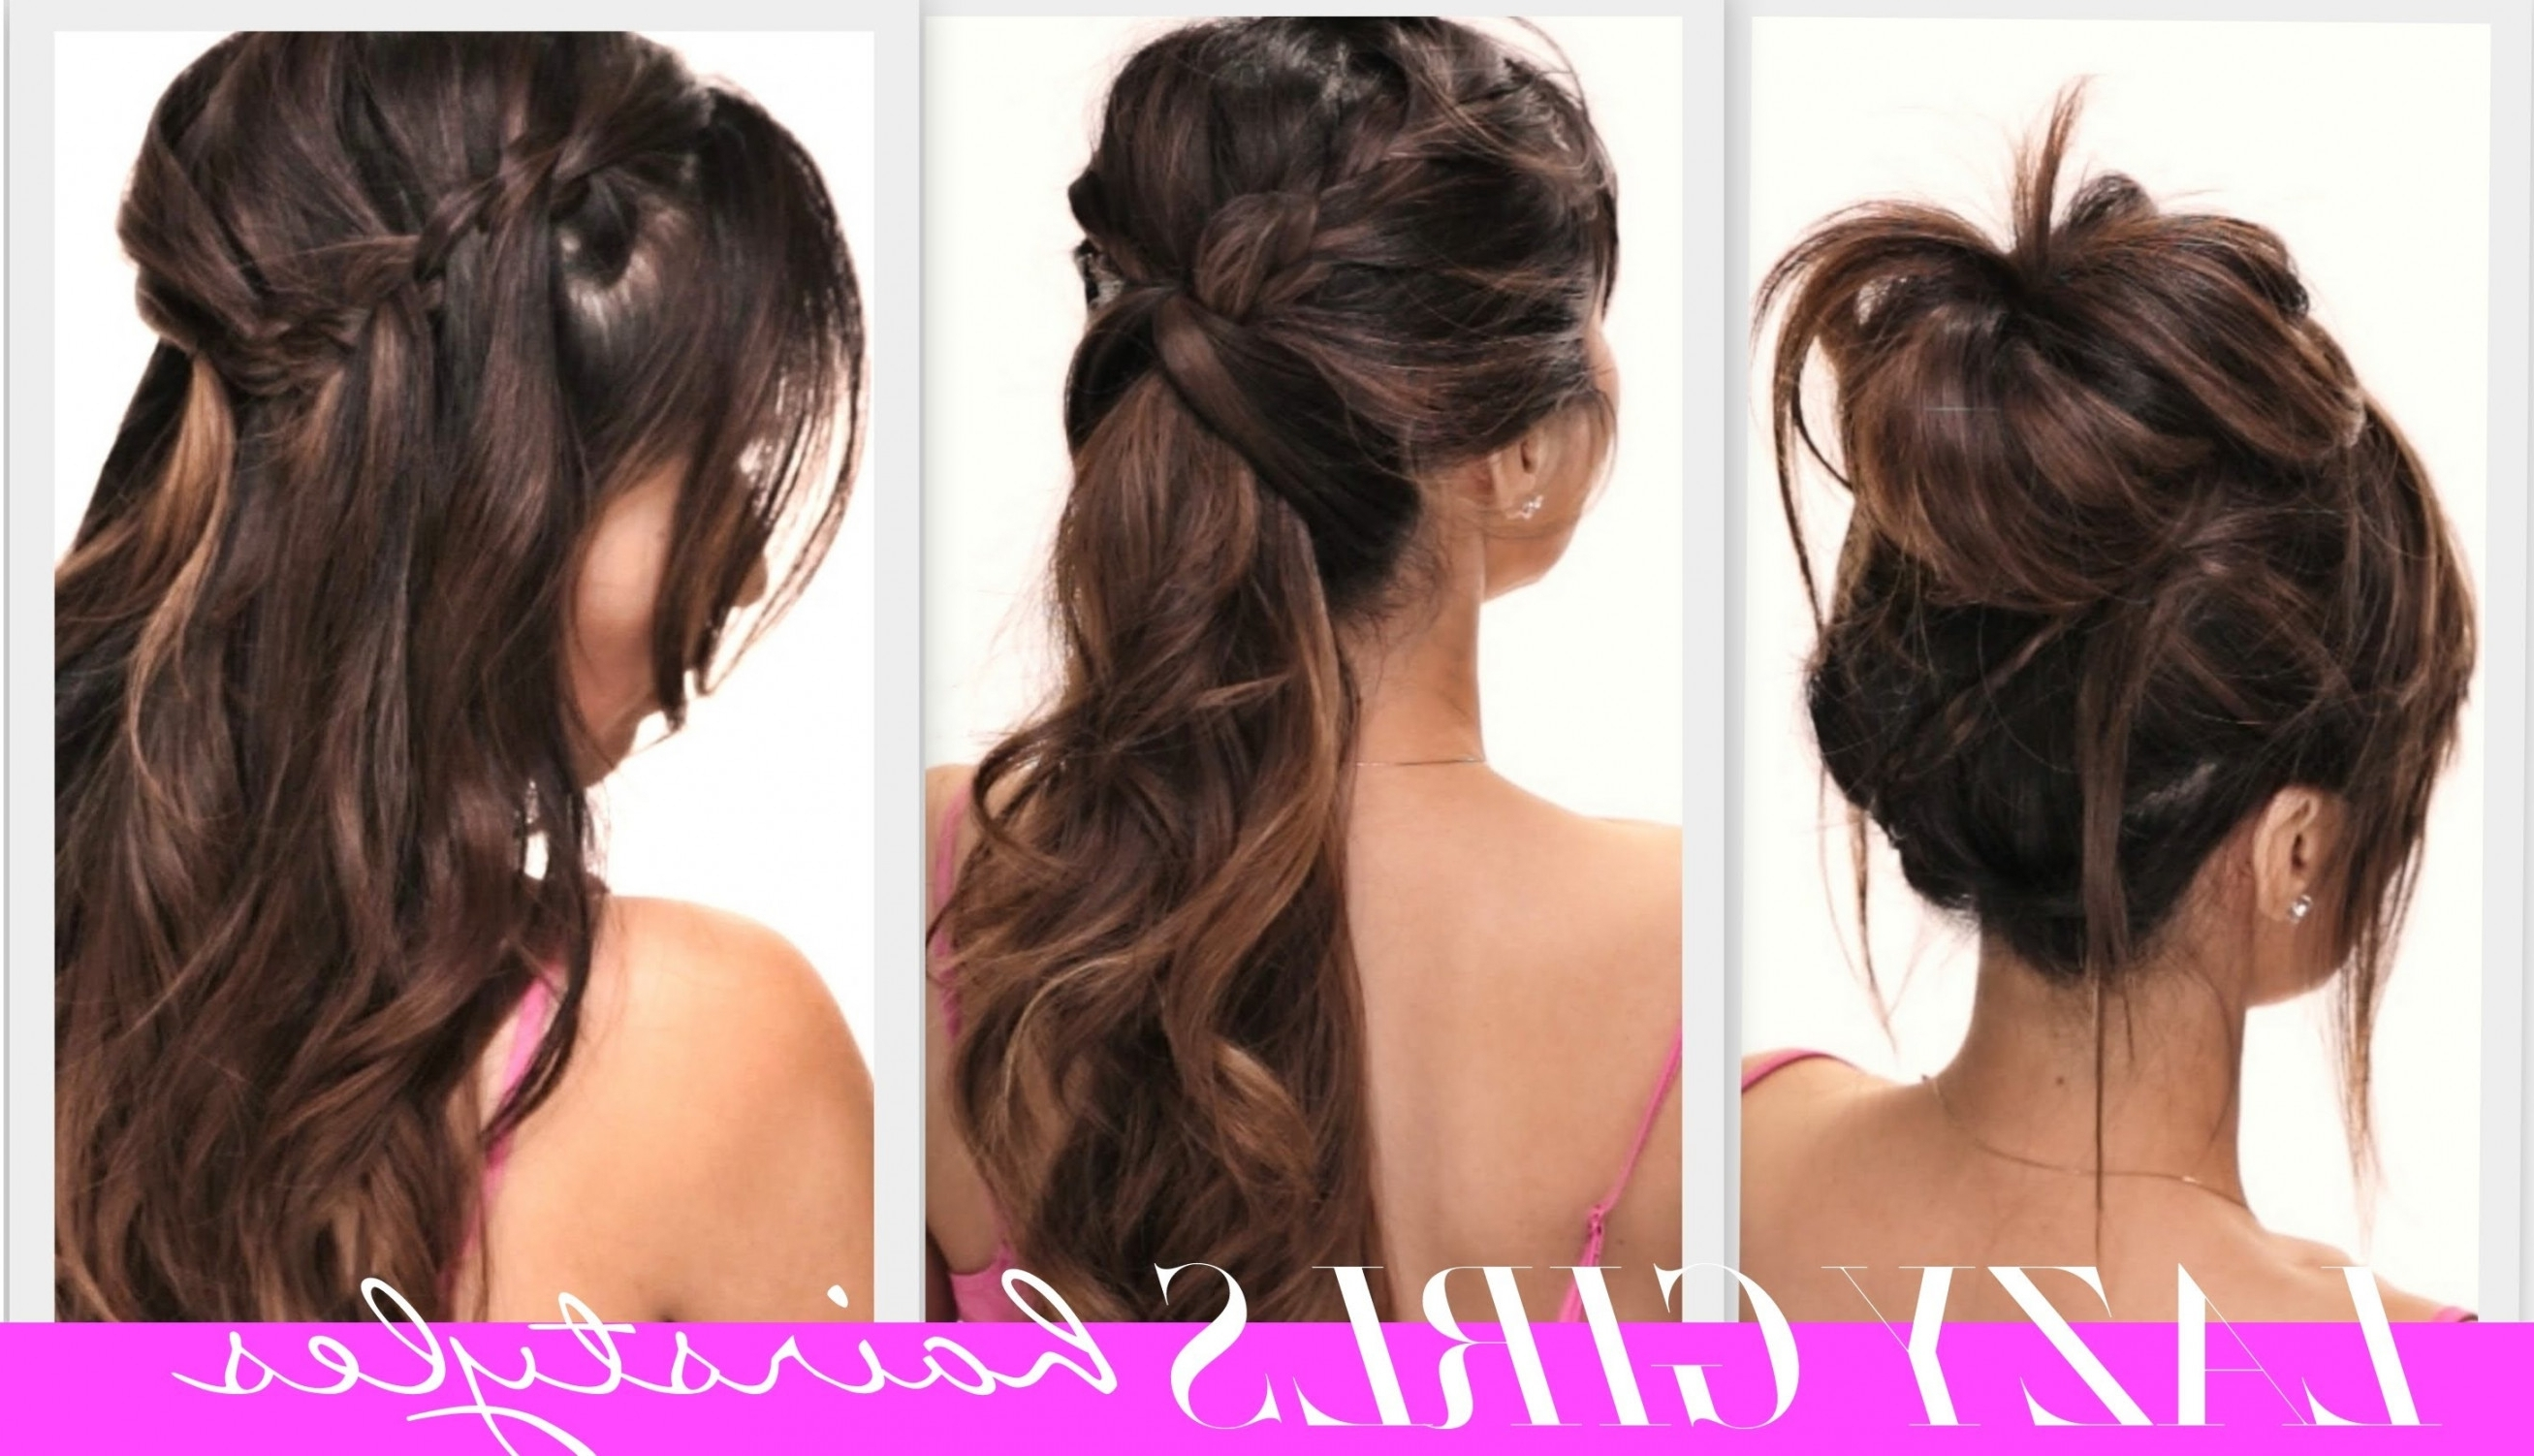 Messy Updo Hairstyles For School | Latest Hairstyles And Haircuts Within Updo Hairstyles For School (View 13 of 15)